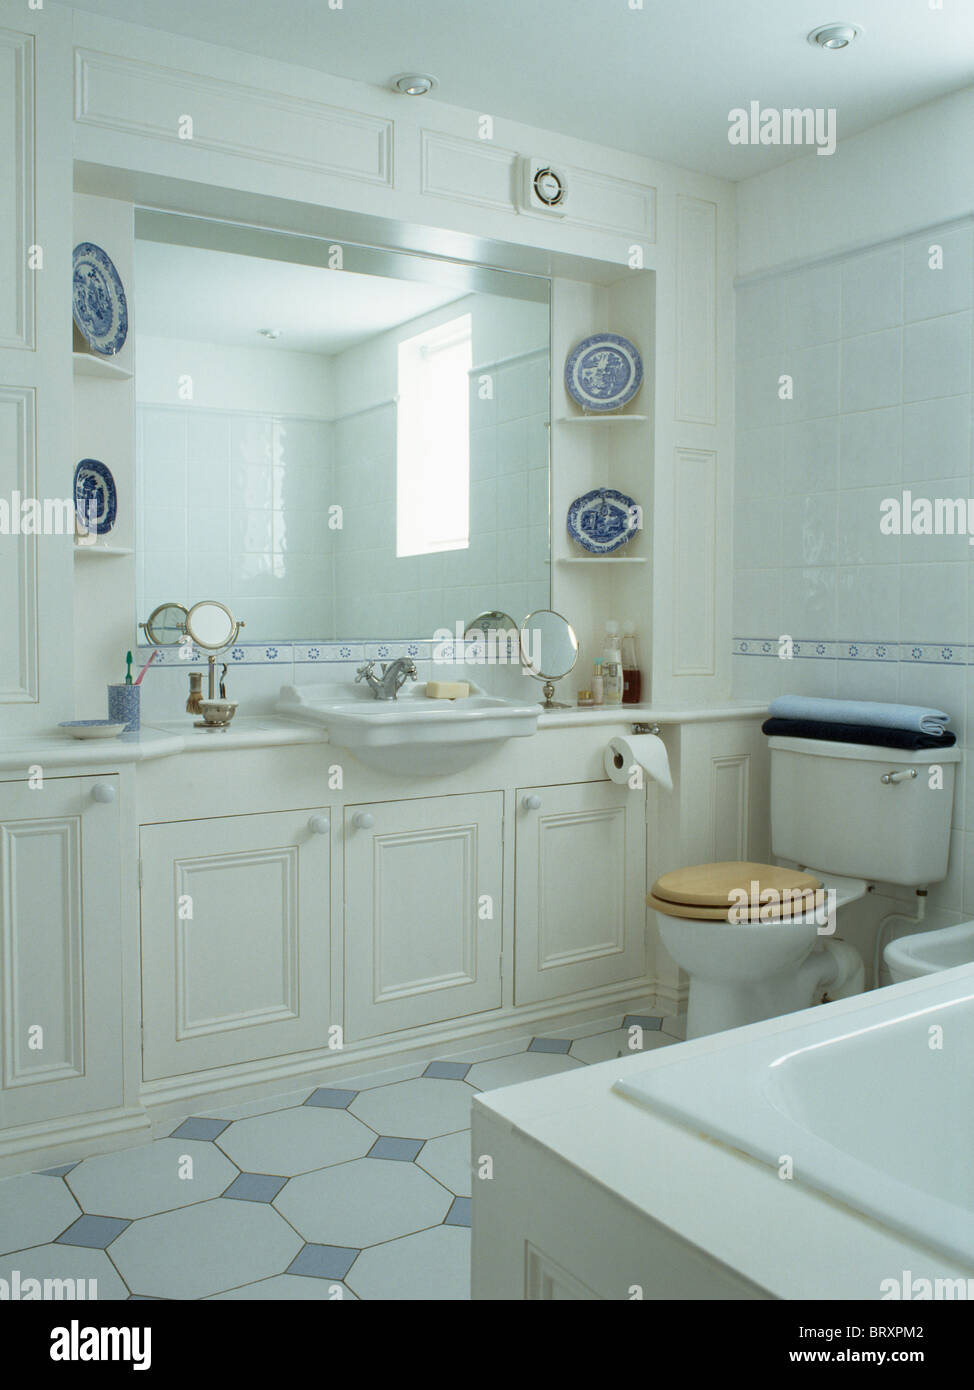 Traditional White Bathrooms Mirror Above Basin In White Vanity Unit In Traditional White